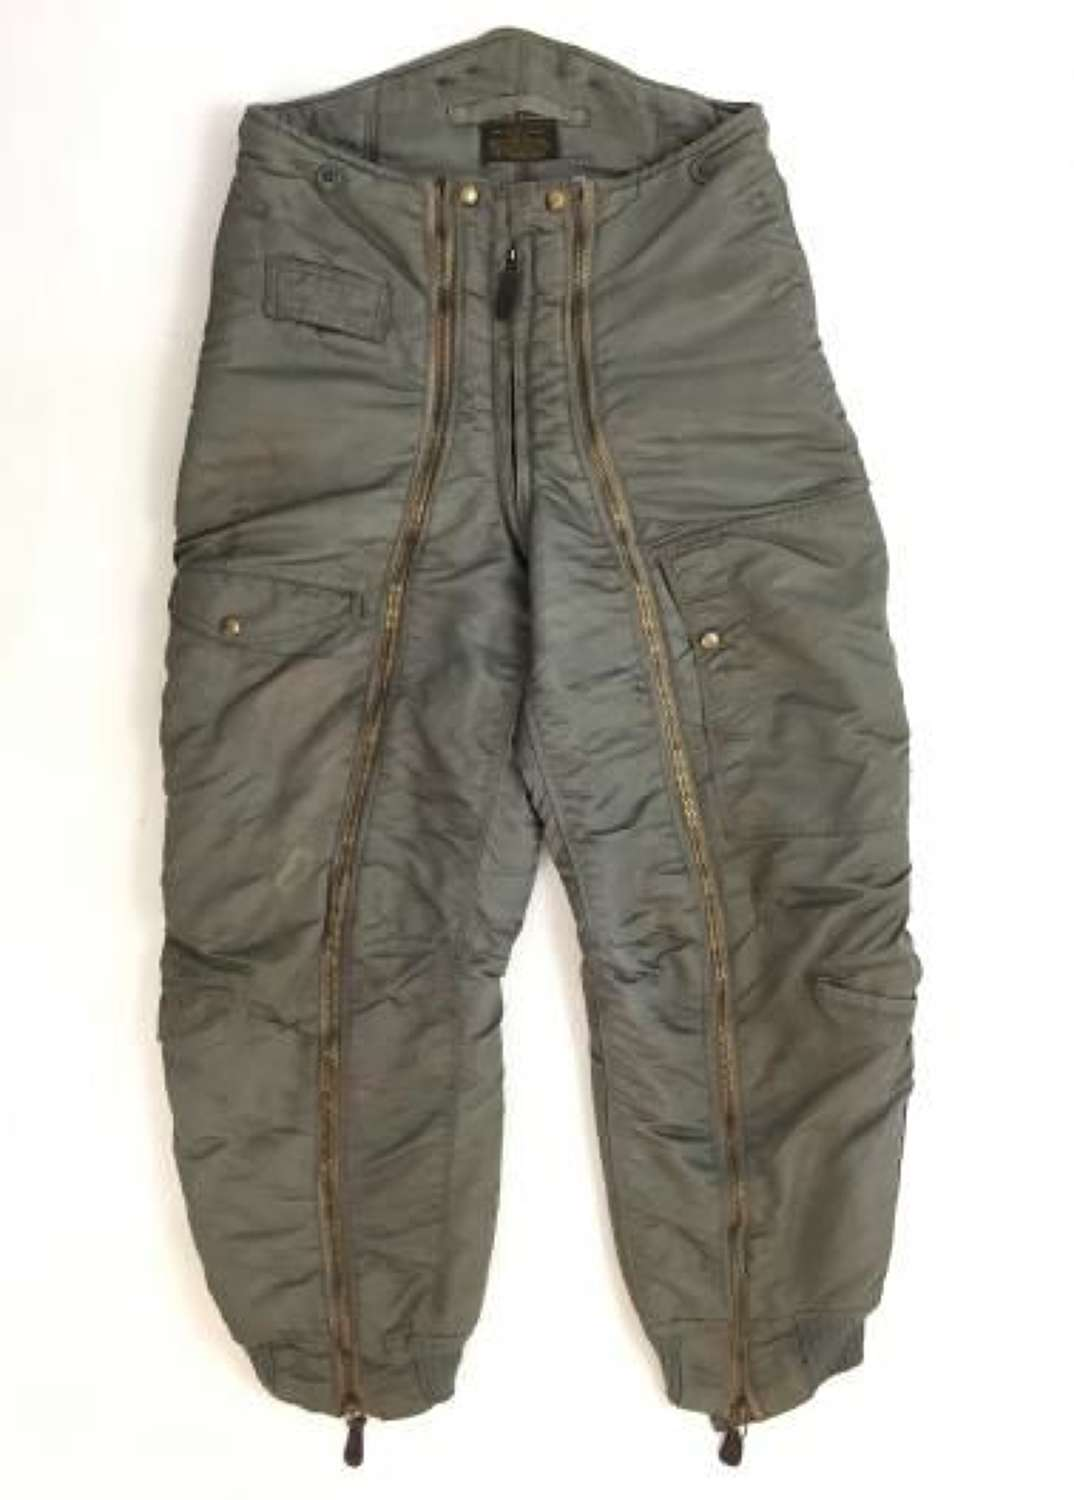 Original USAF D-1B Flying Trousers - Size 32